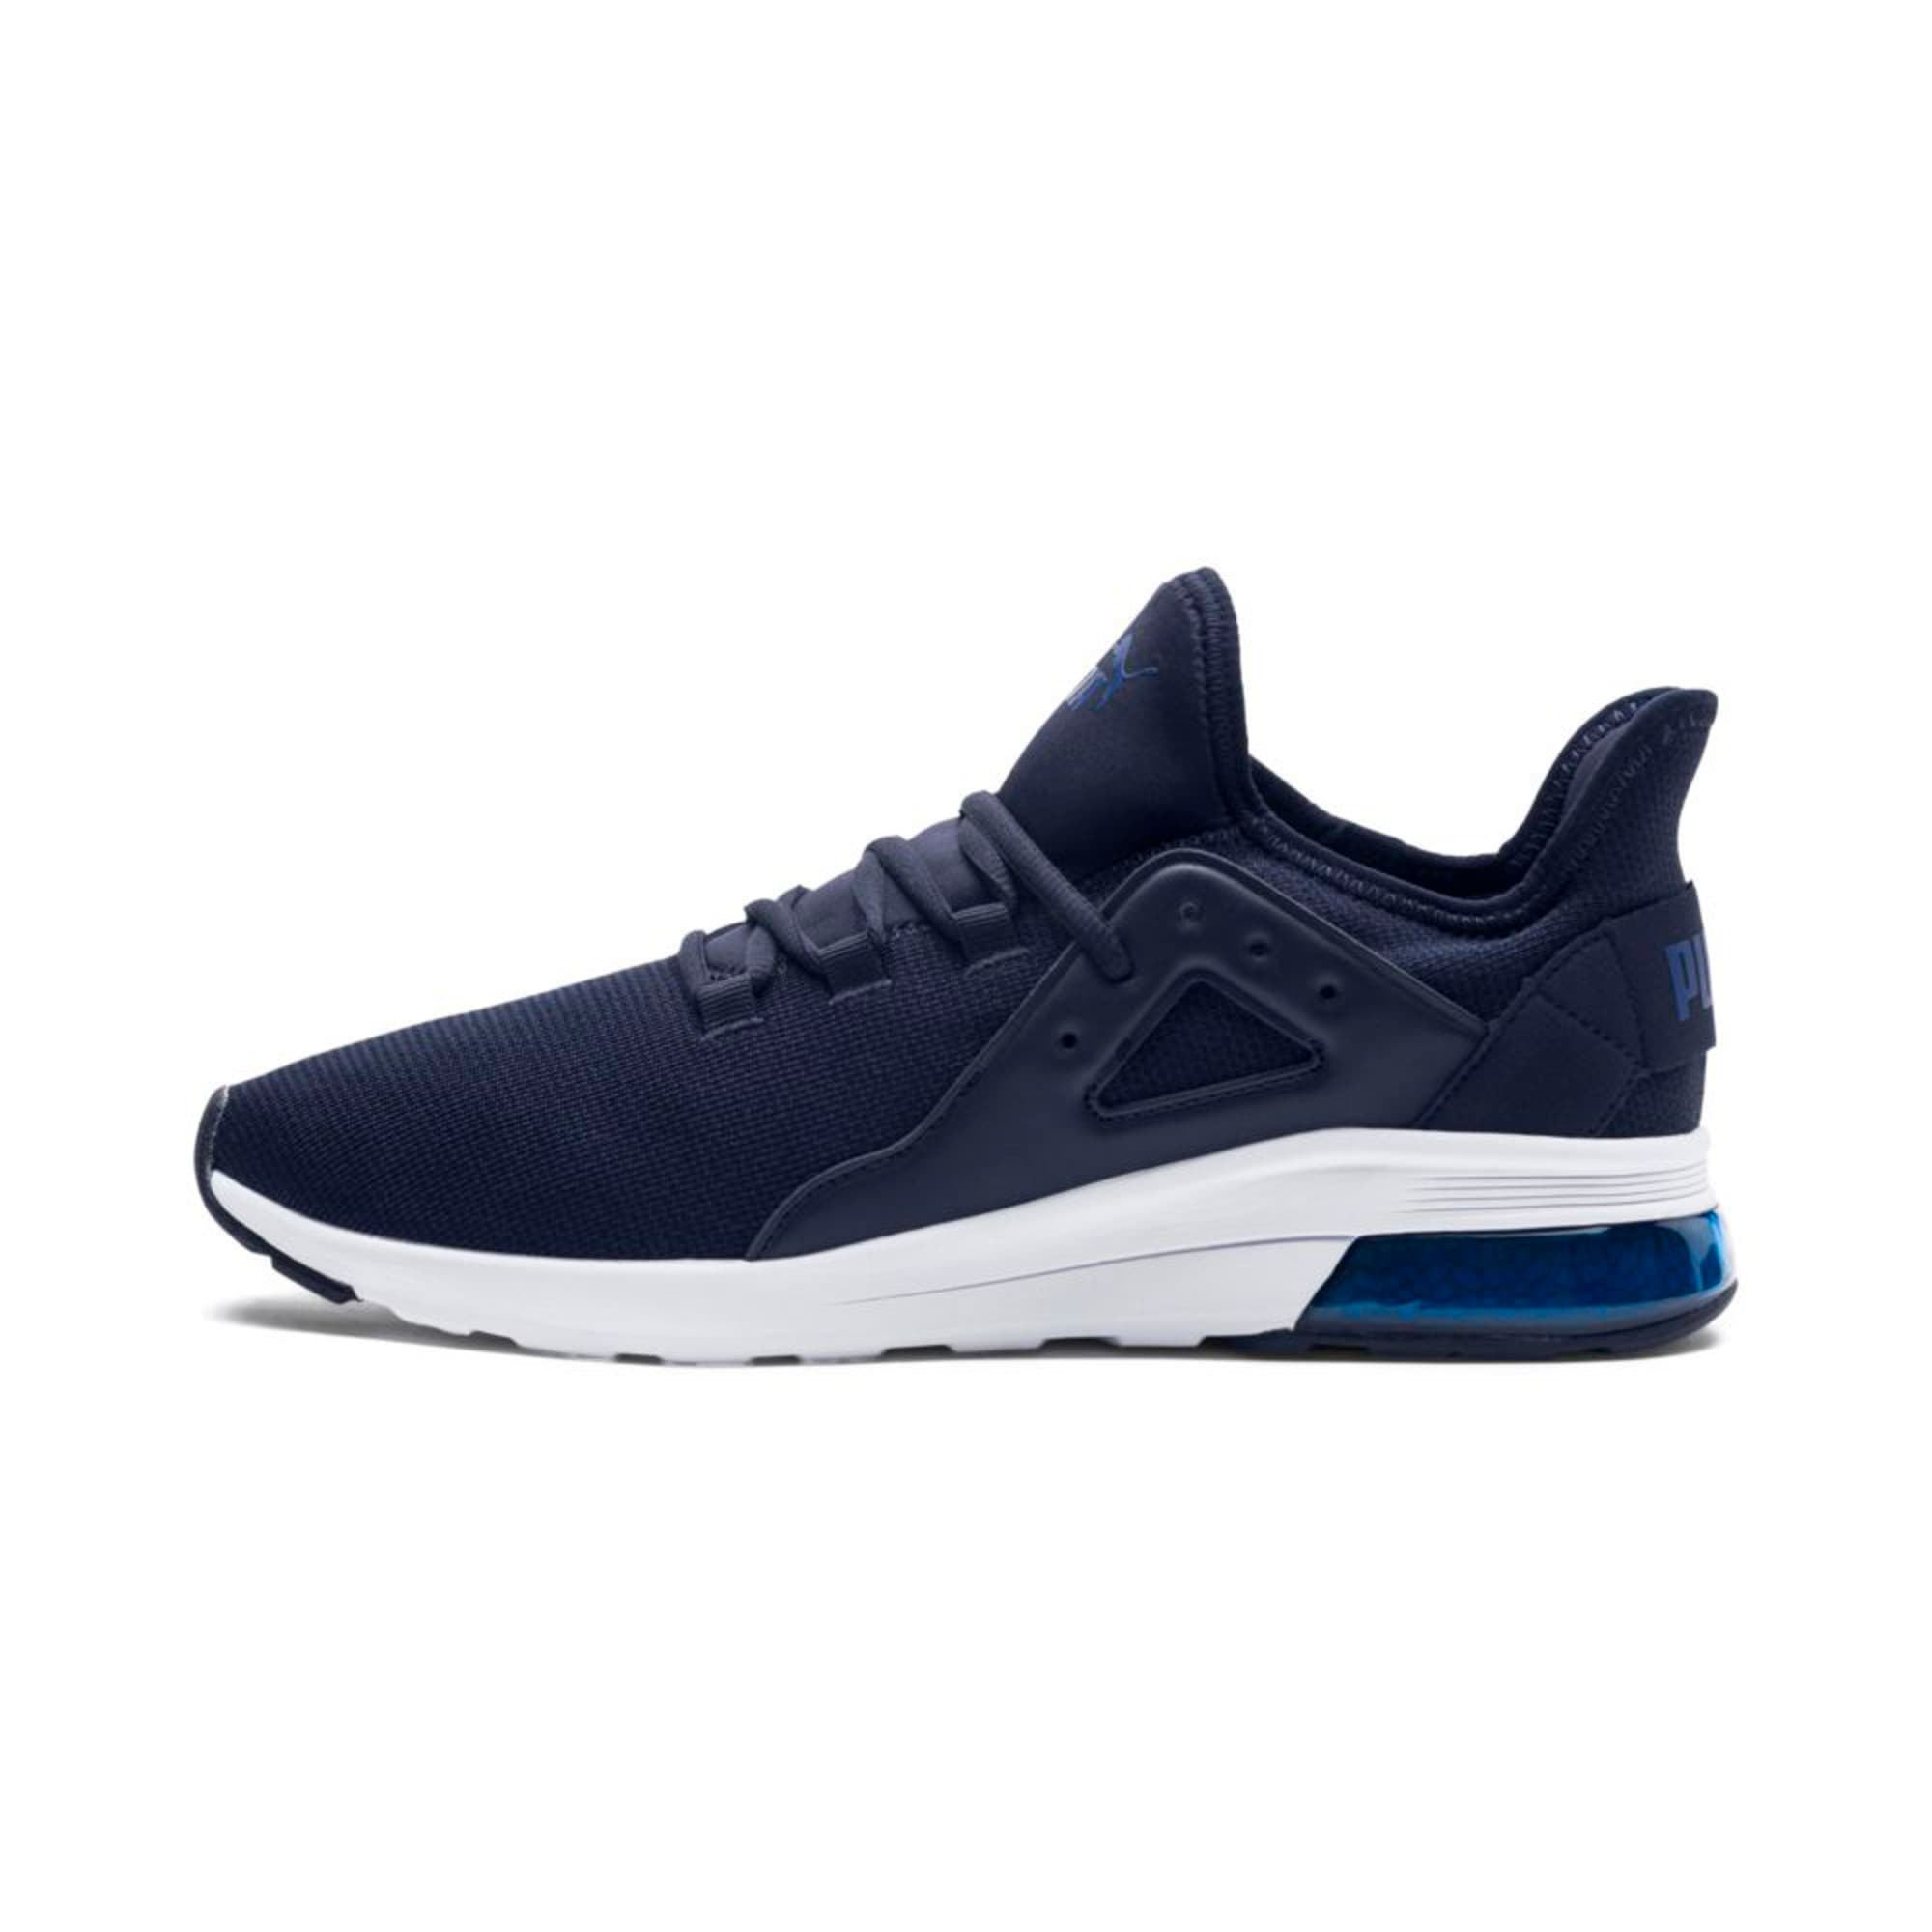 Thumbnail 1 of Electron Street Knit Trainers, Peacoat-Sodalite Blue, medium-IND